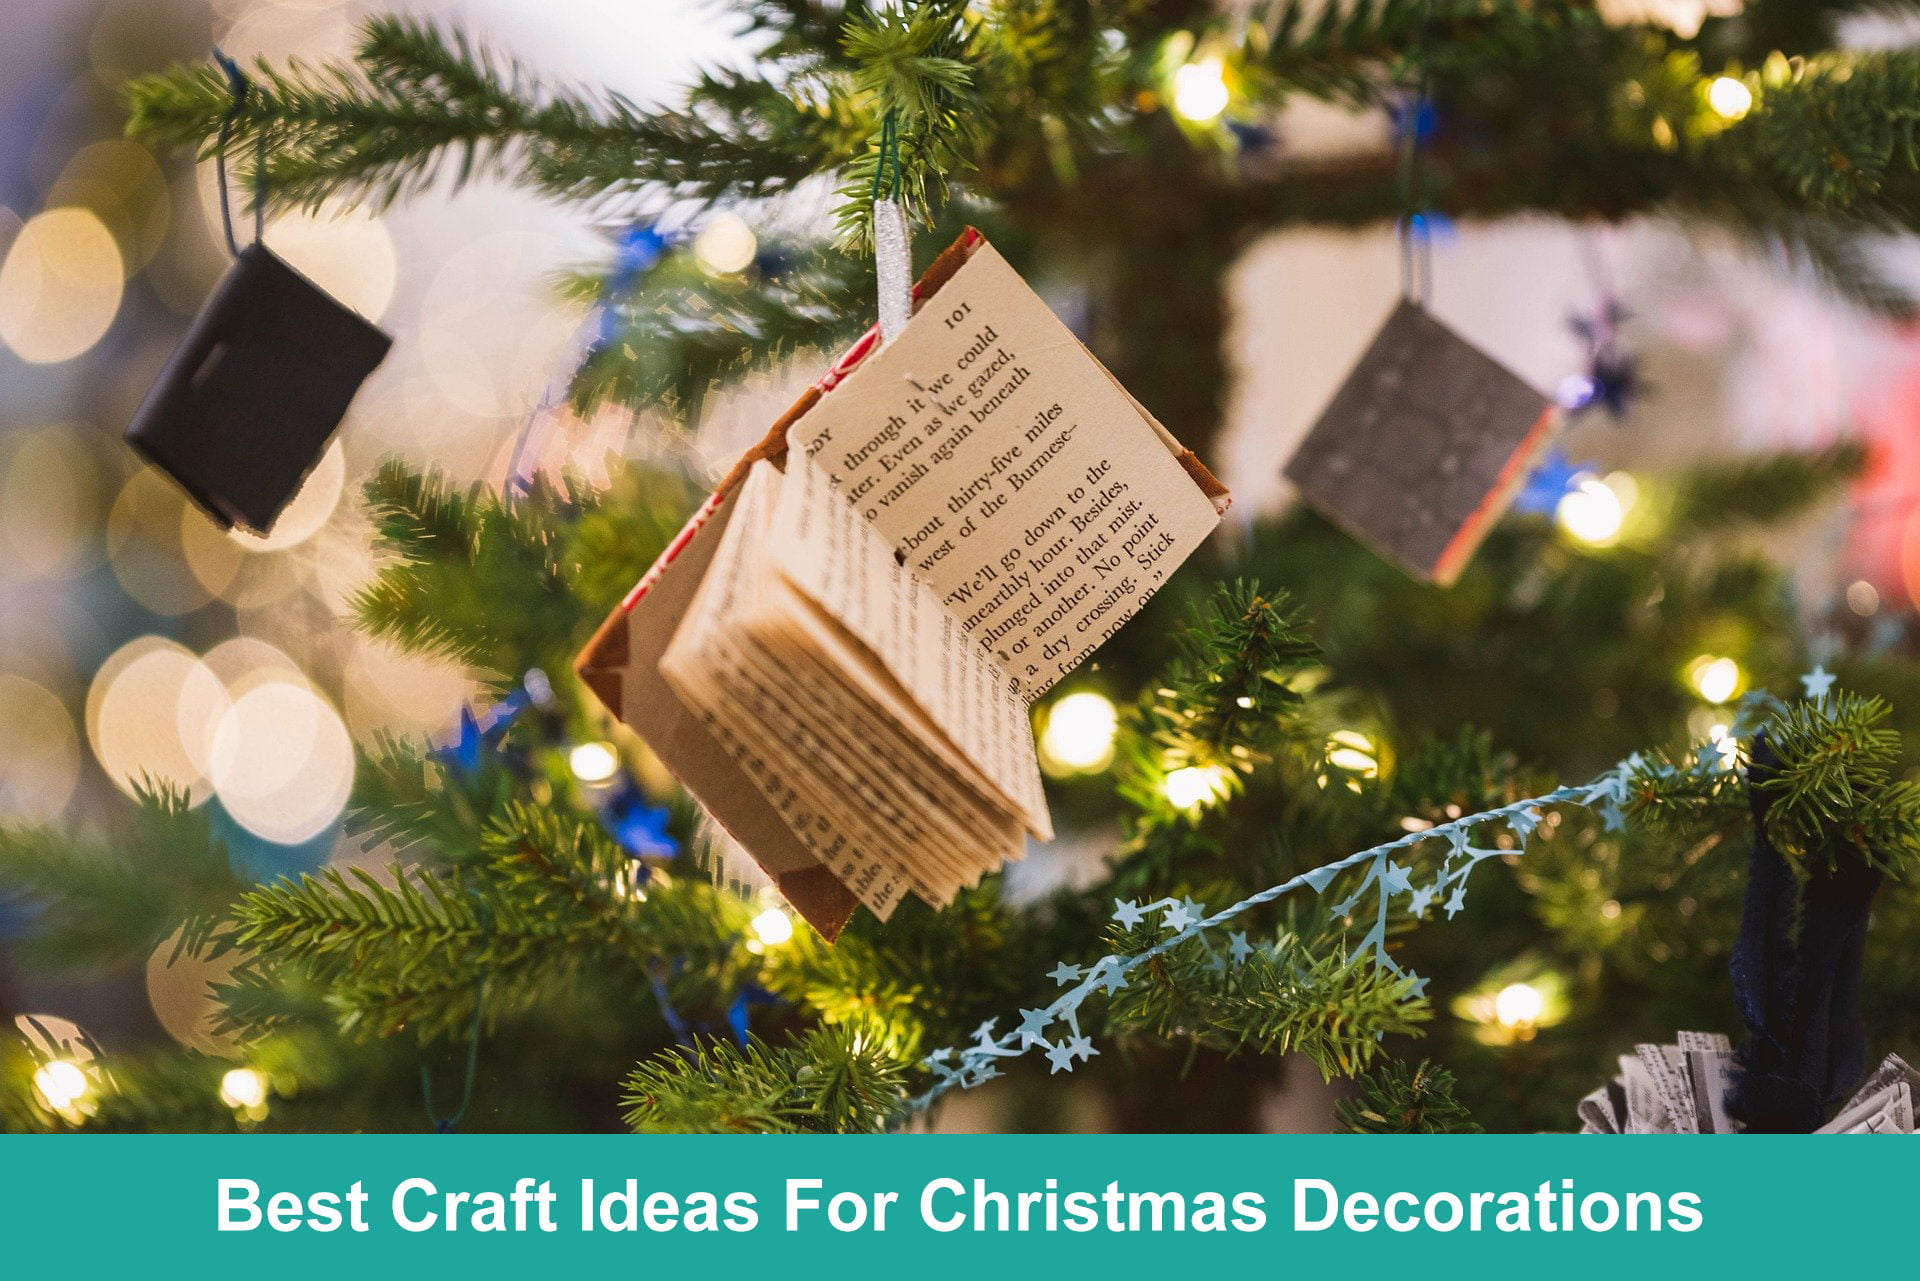 Best Craft Ideas For Christmas Decorations